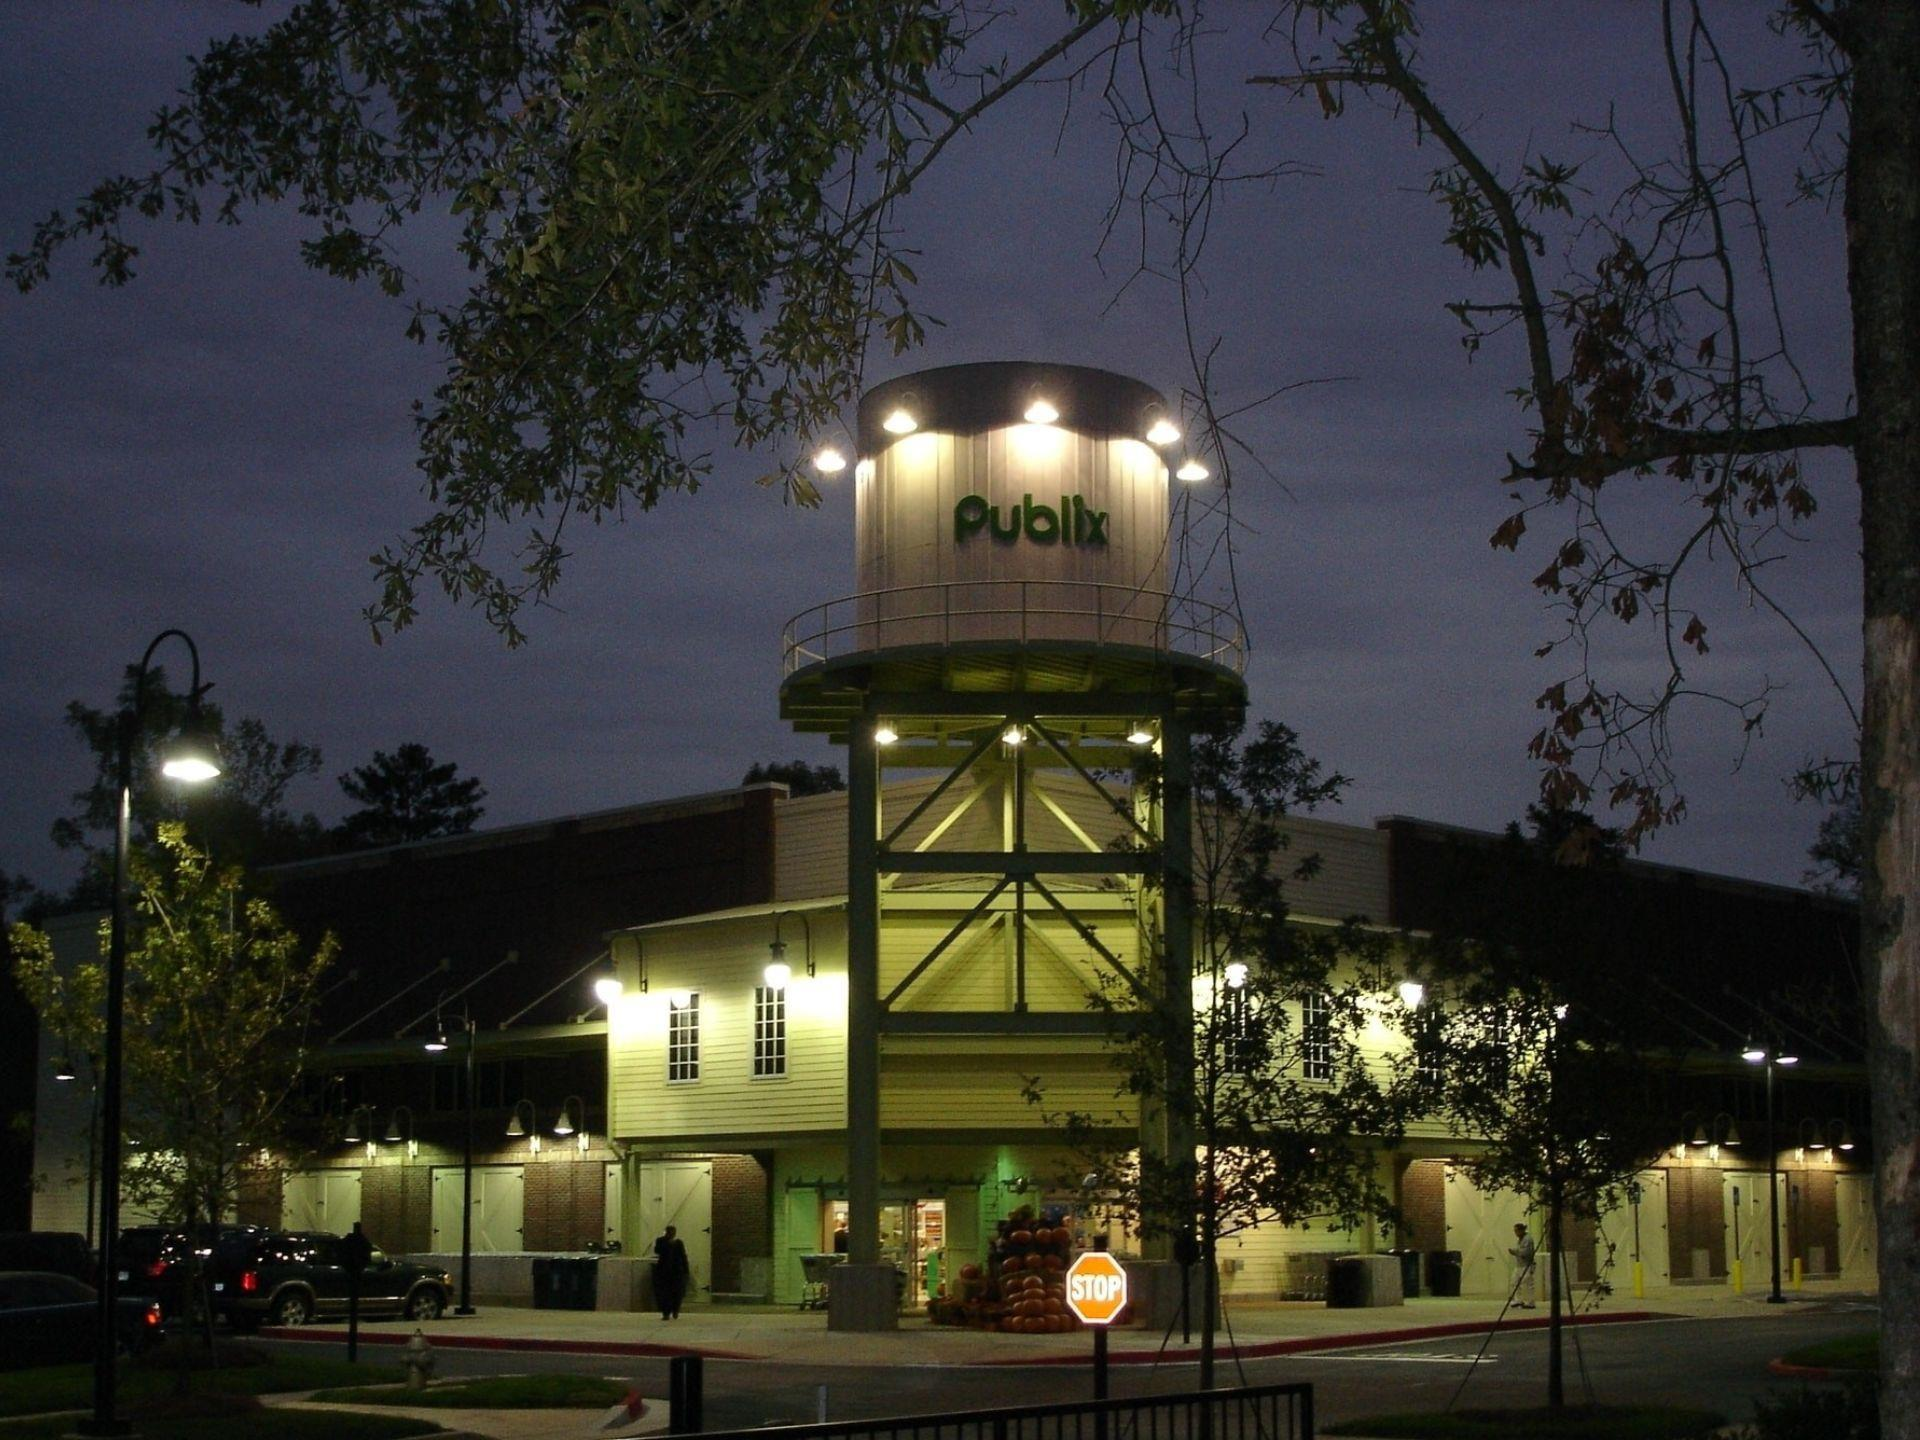 view of publix tower lit up in the evening